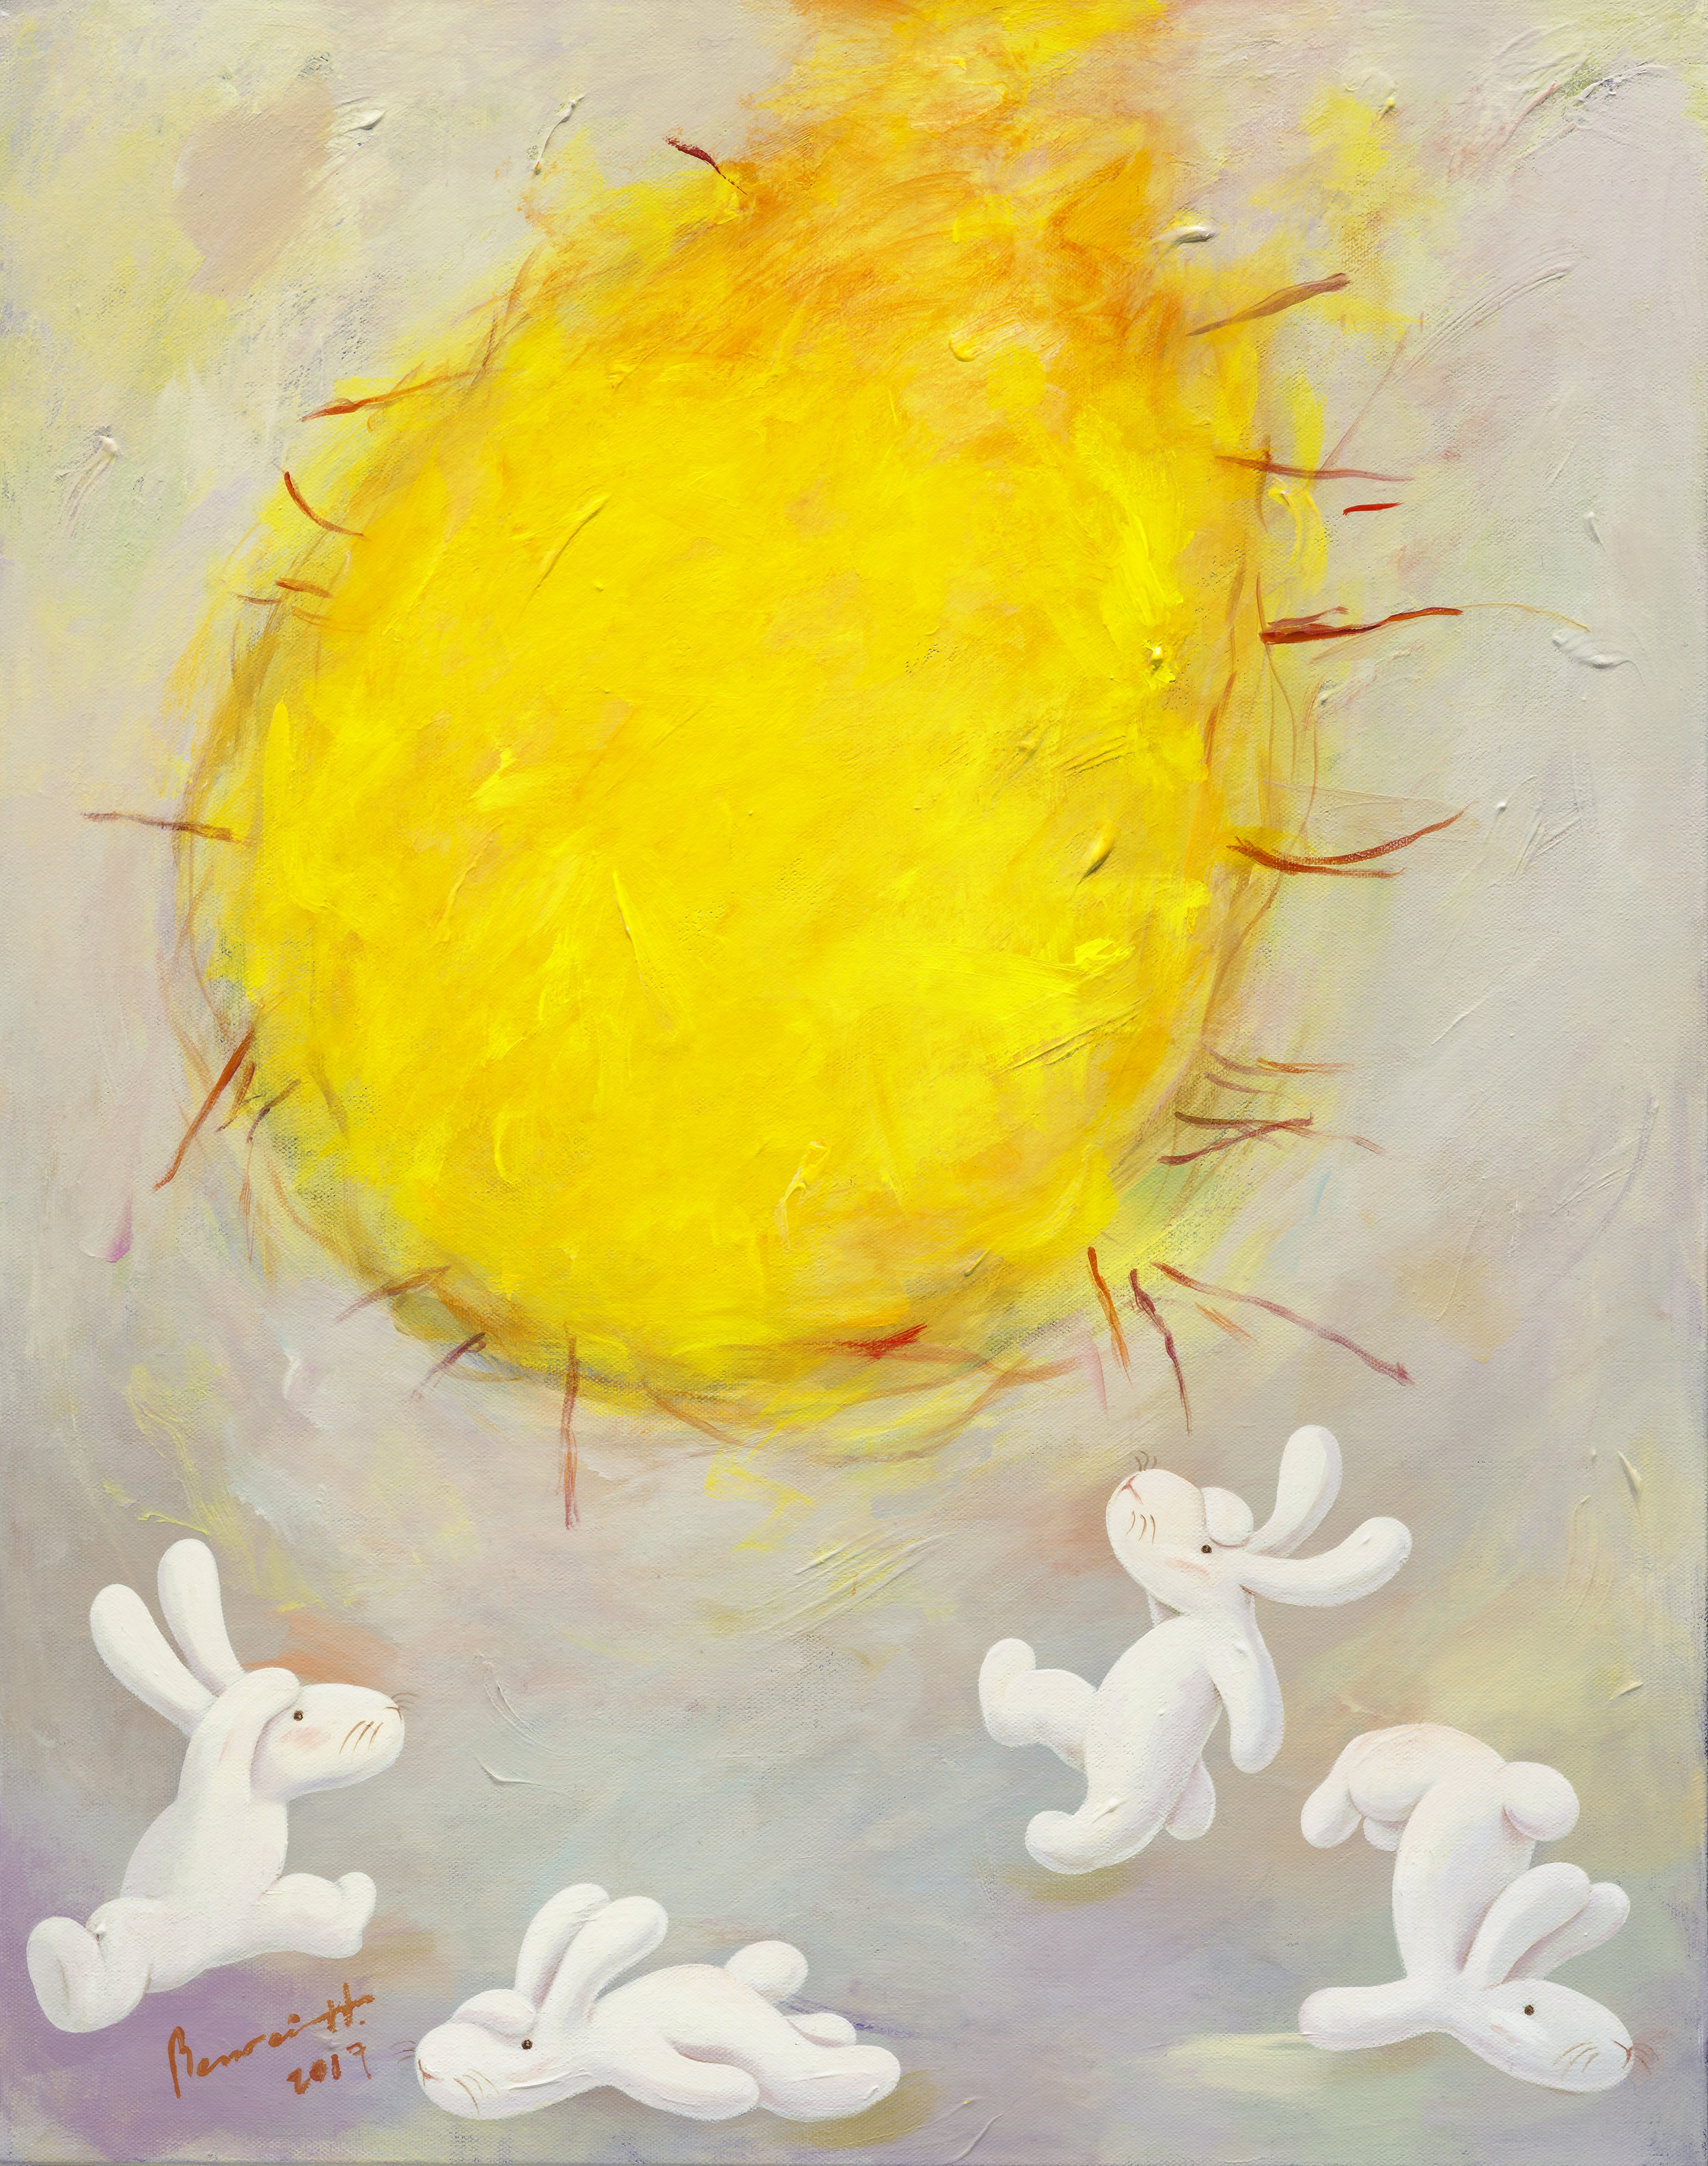 "Oh sun! you've broken my heart 今天的太陽把心都曬傷了,28x22""(71x56cm), acrylic on canvas, 2017"